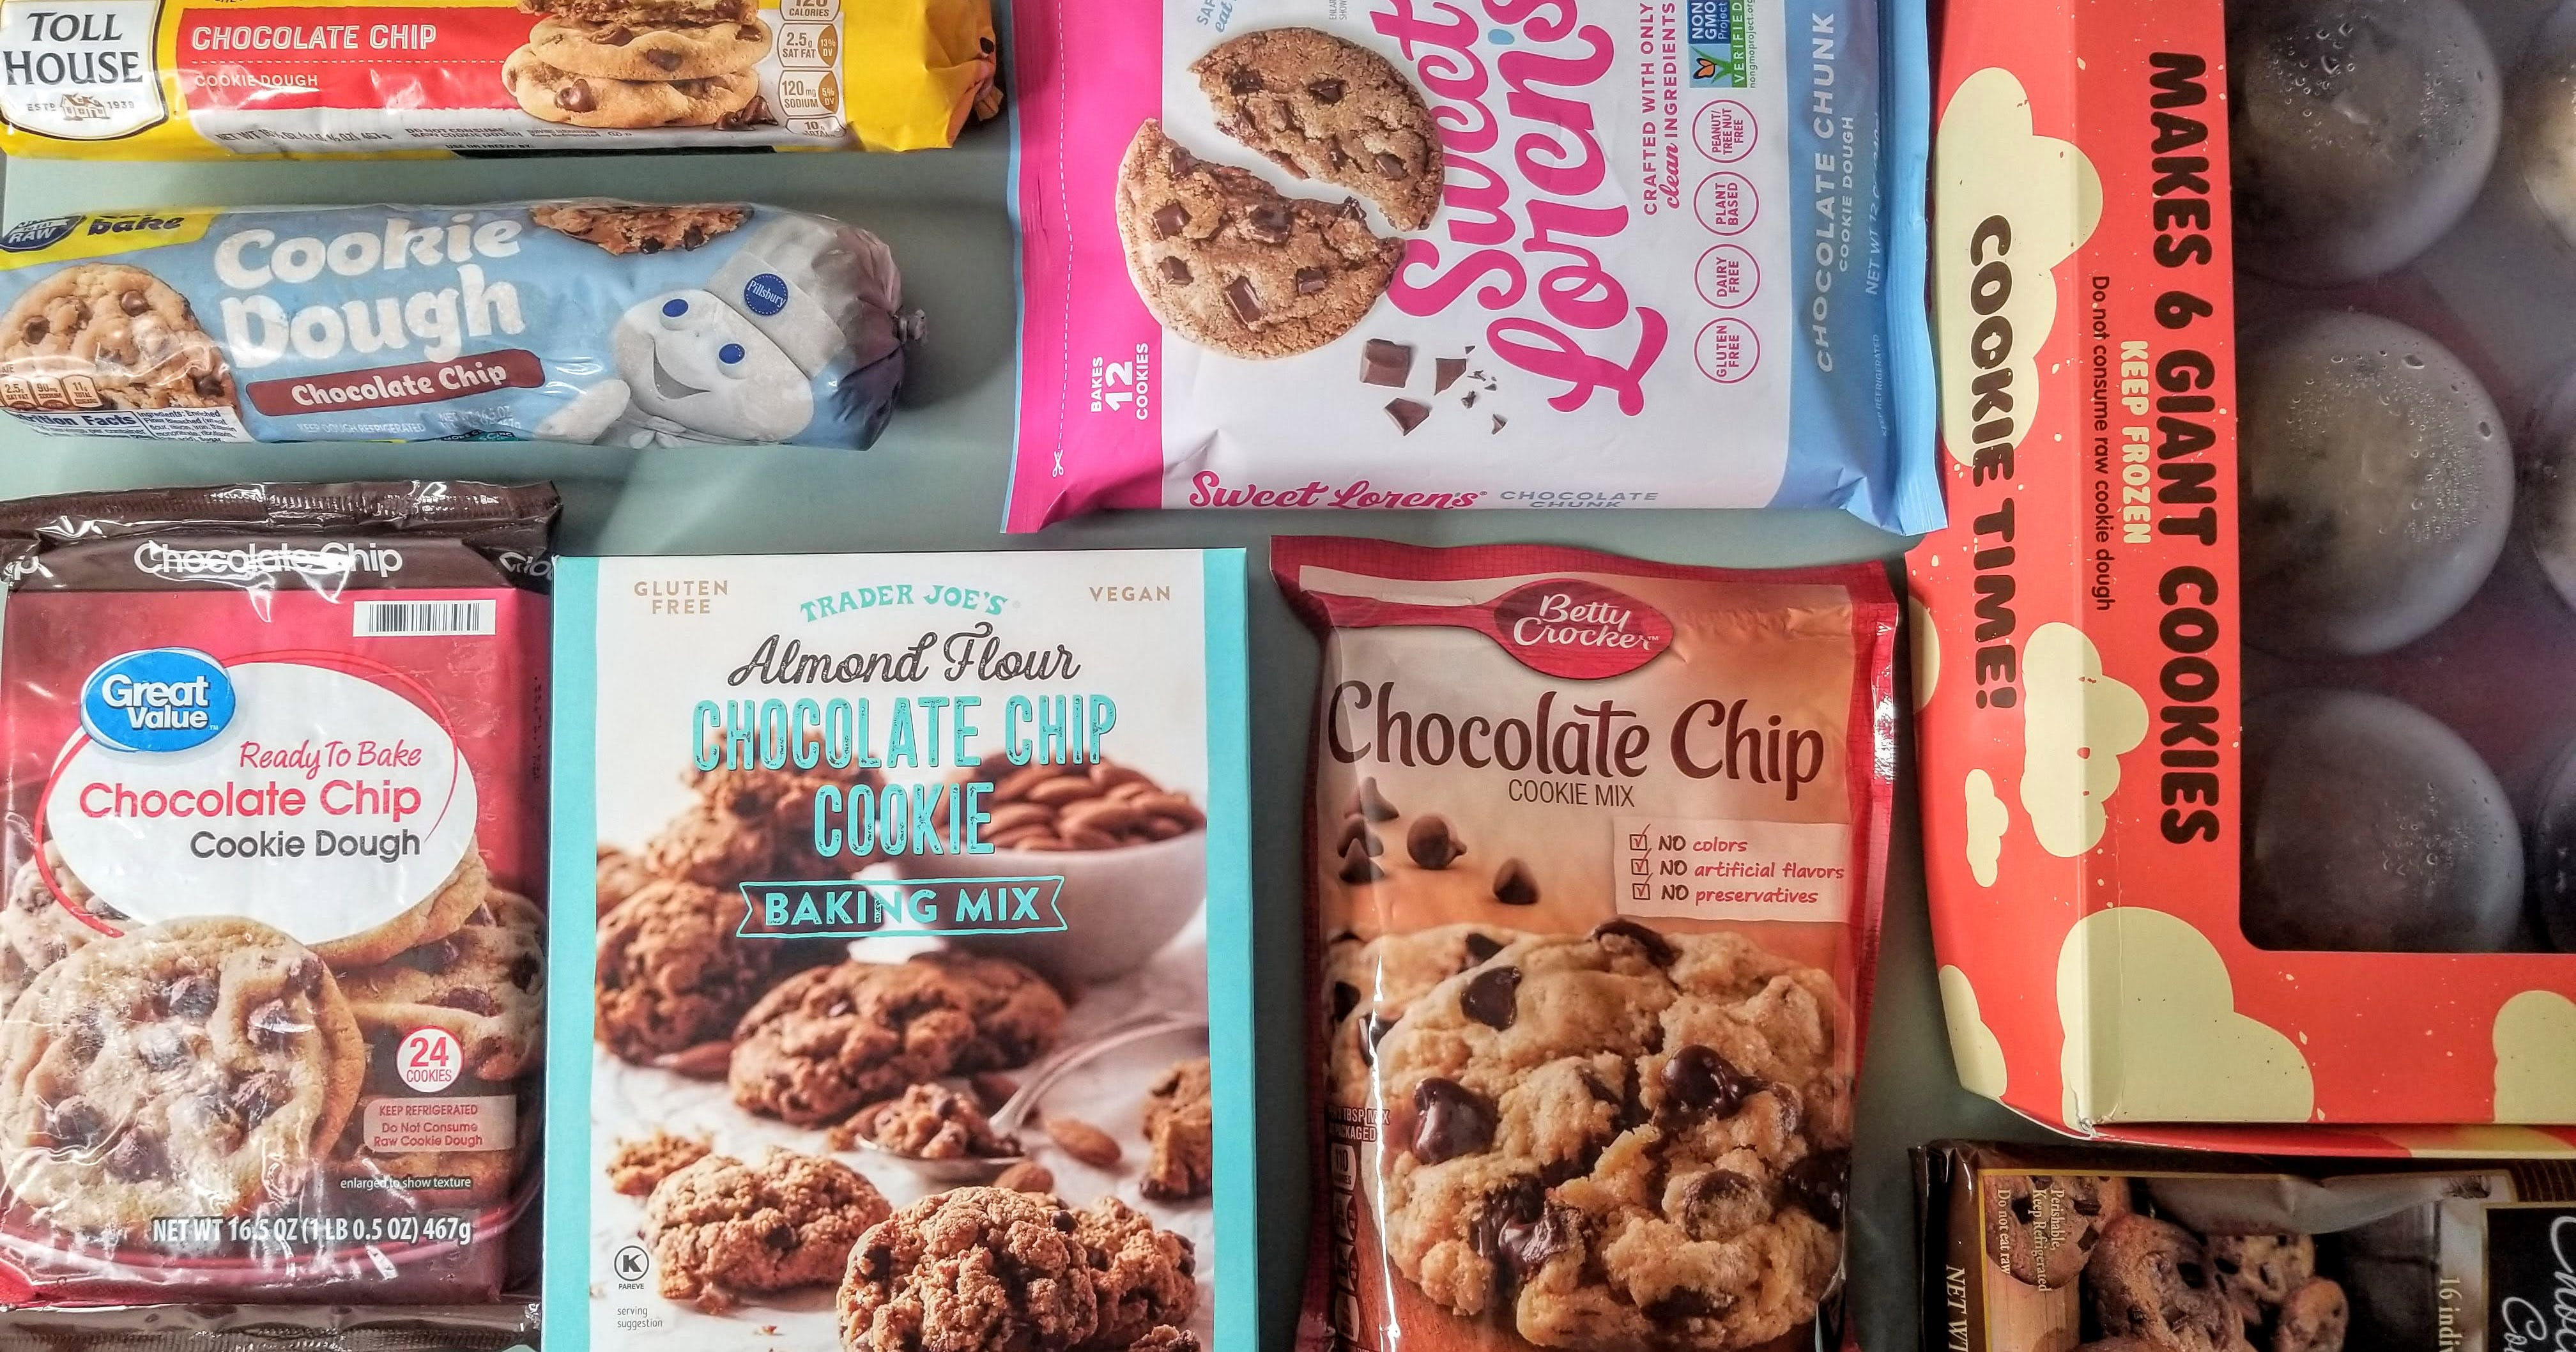 What's the Best Store-Bought Chocolate Chip Cookie Dough? We Tested 9 to Find One for Every Palate